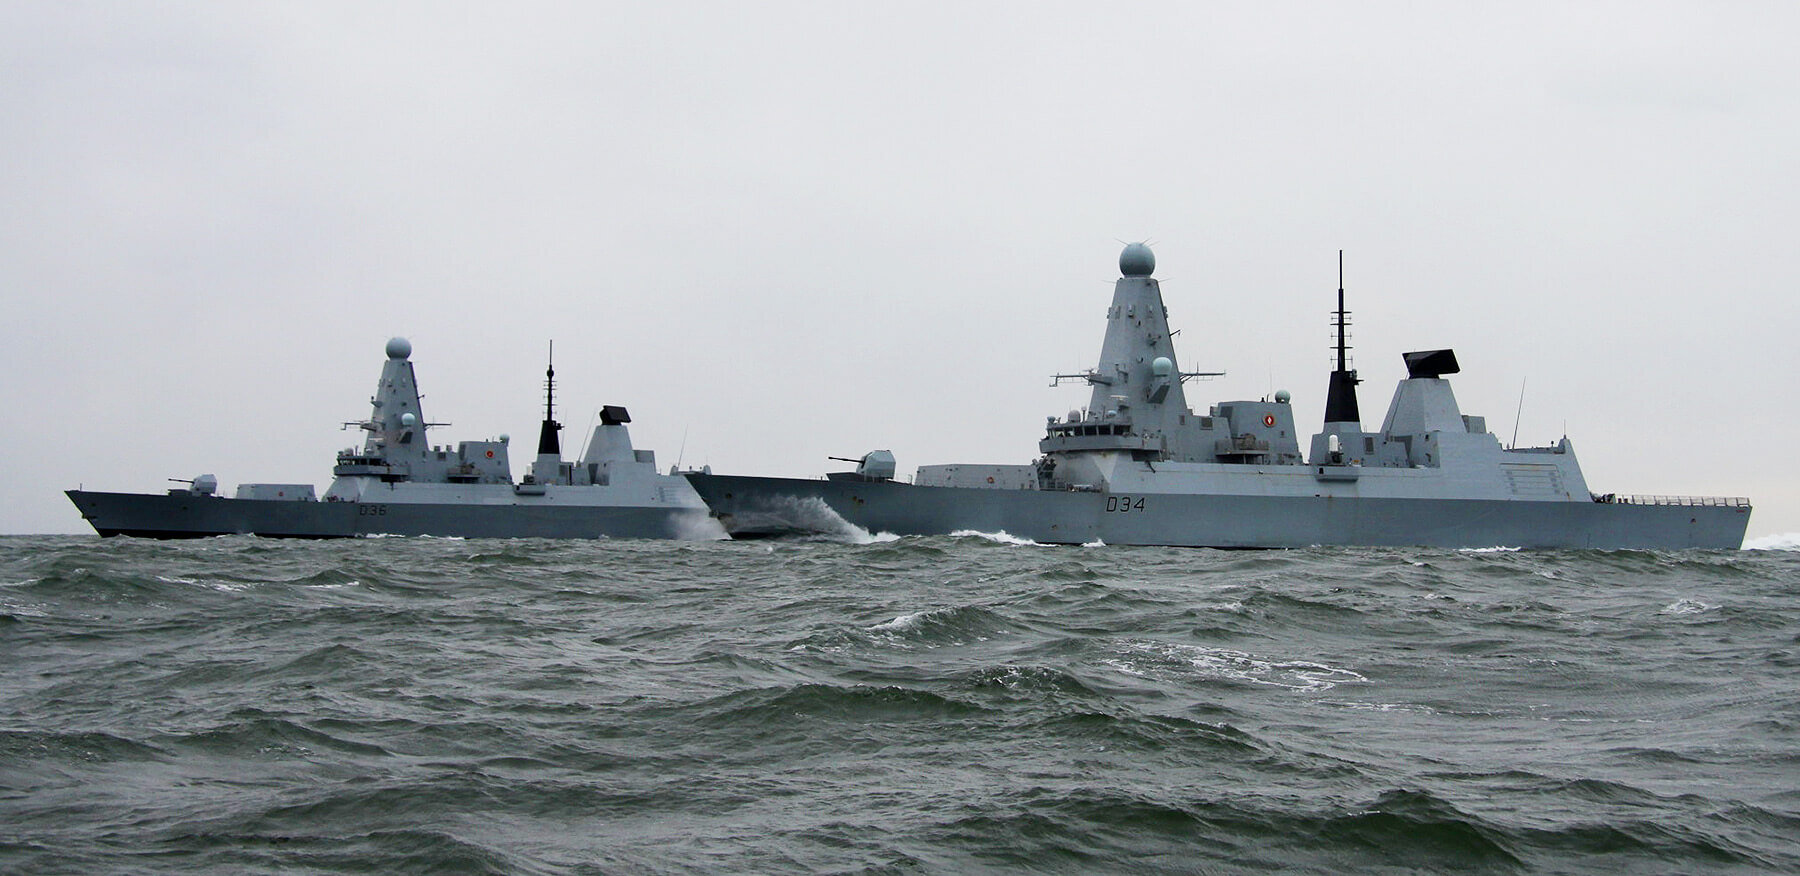 Meeting up with sister ship HMS Diamond during initial sea trails, April 2018